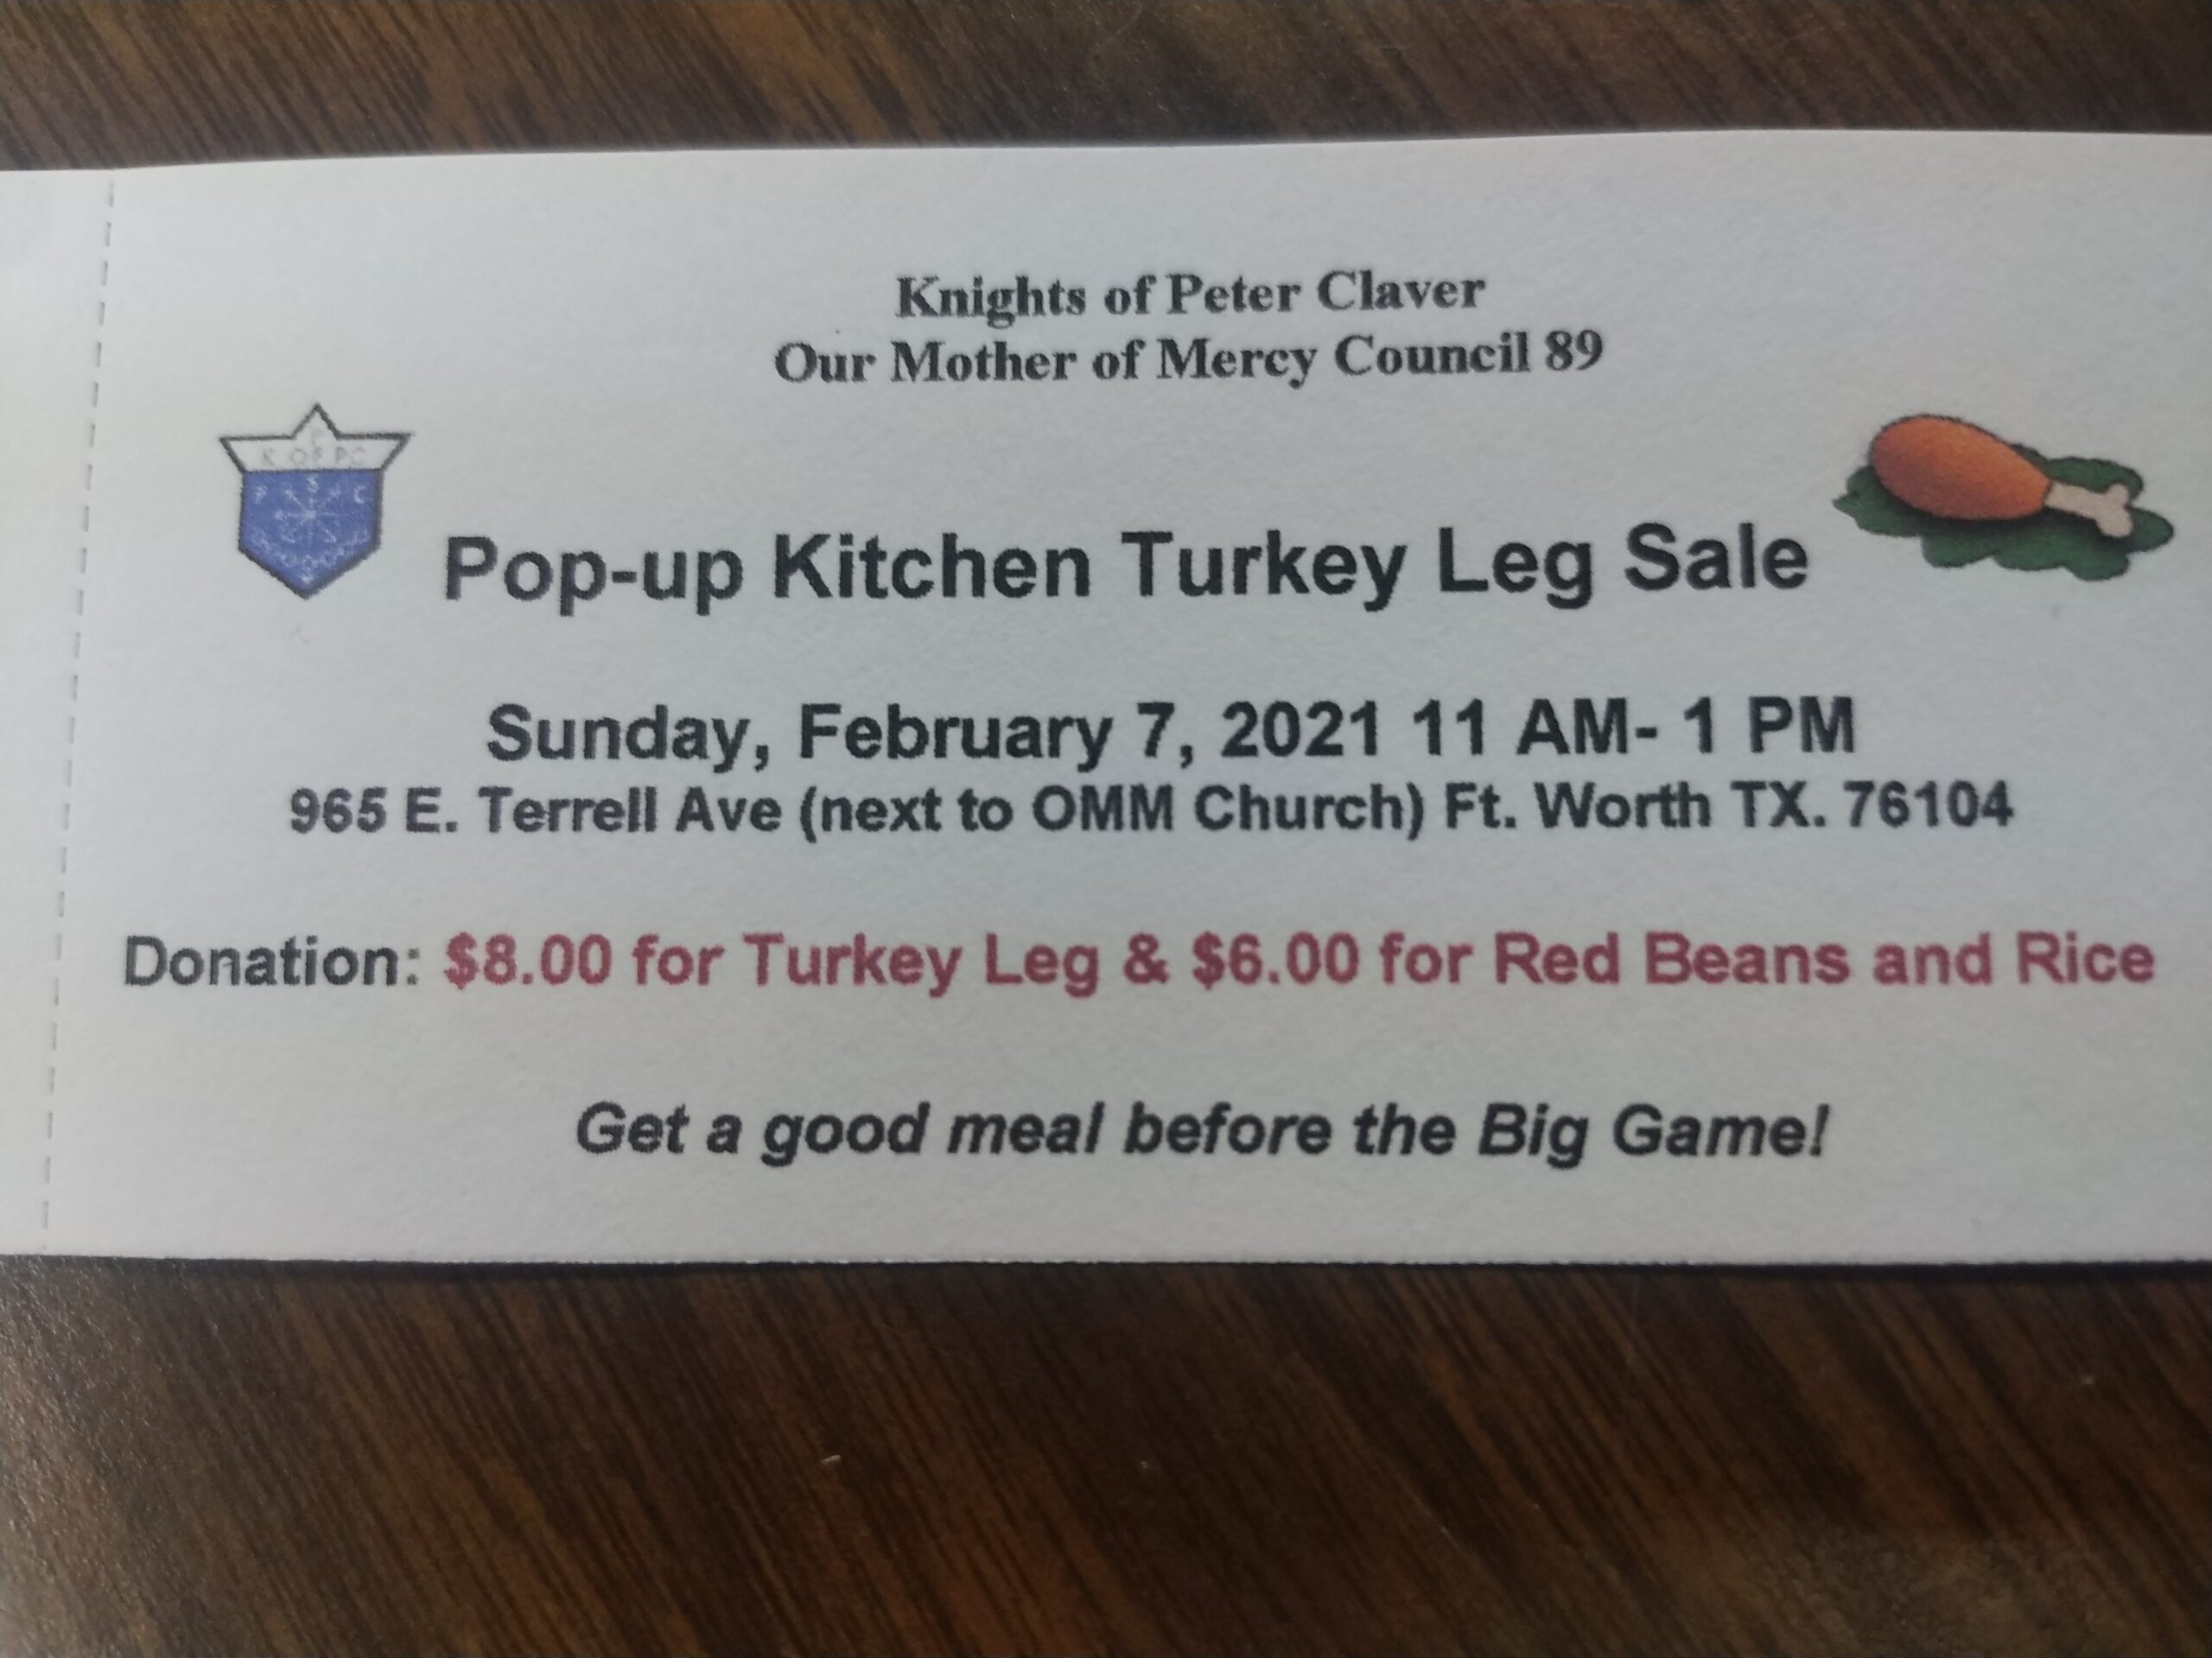 Pop-up Kitchen Turkey Leg Sale